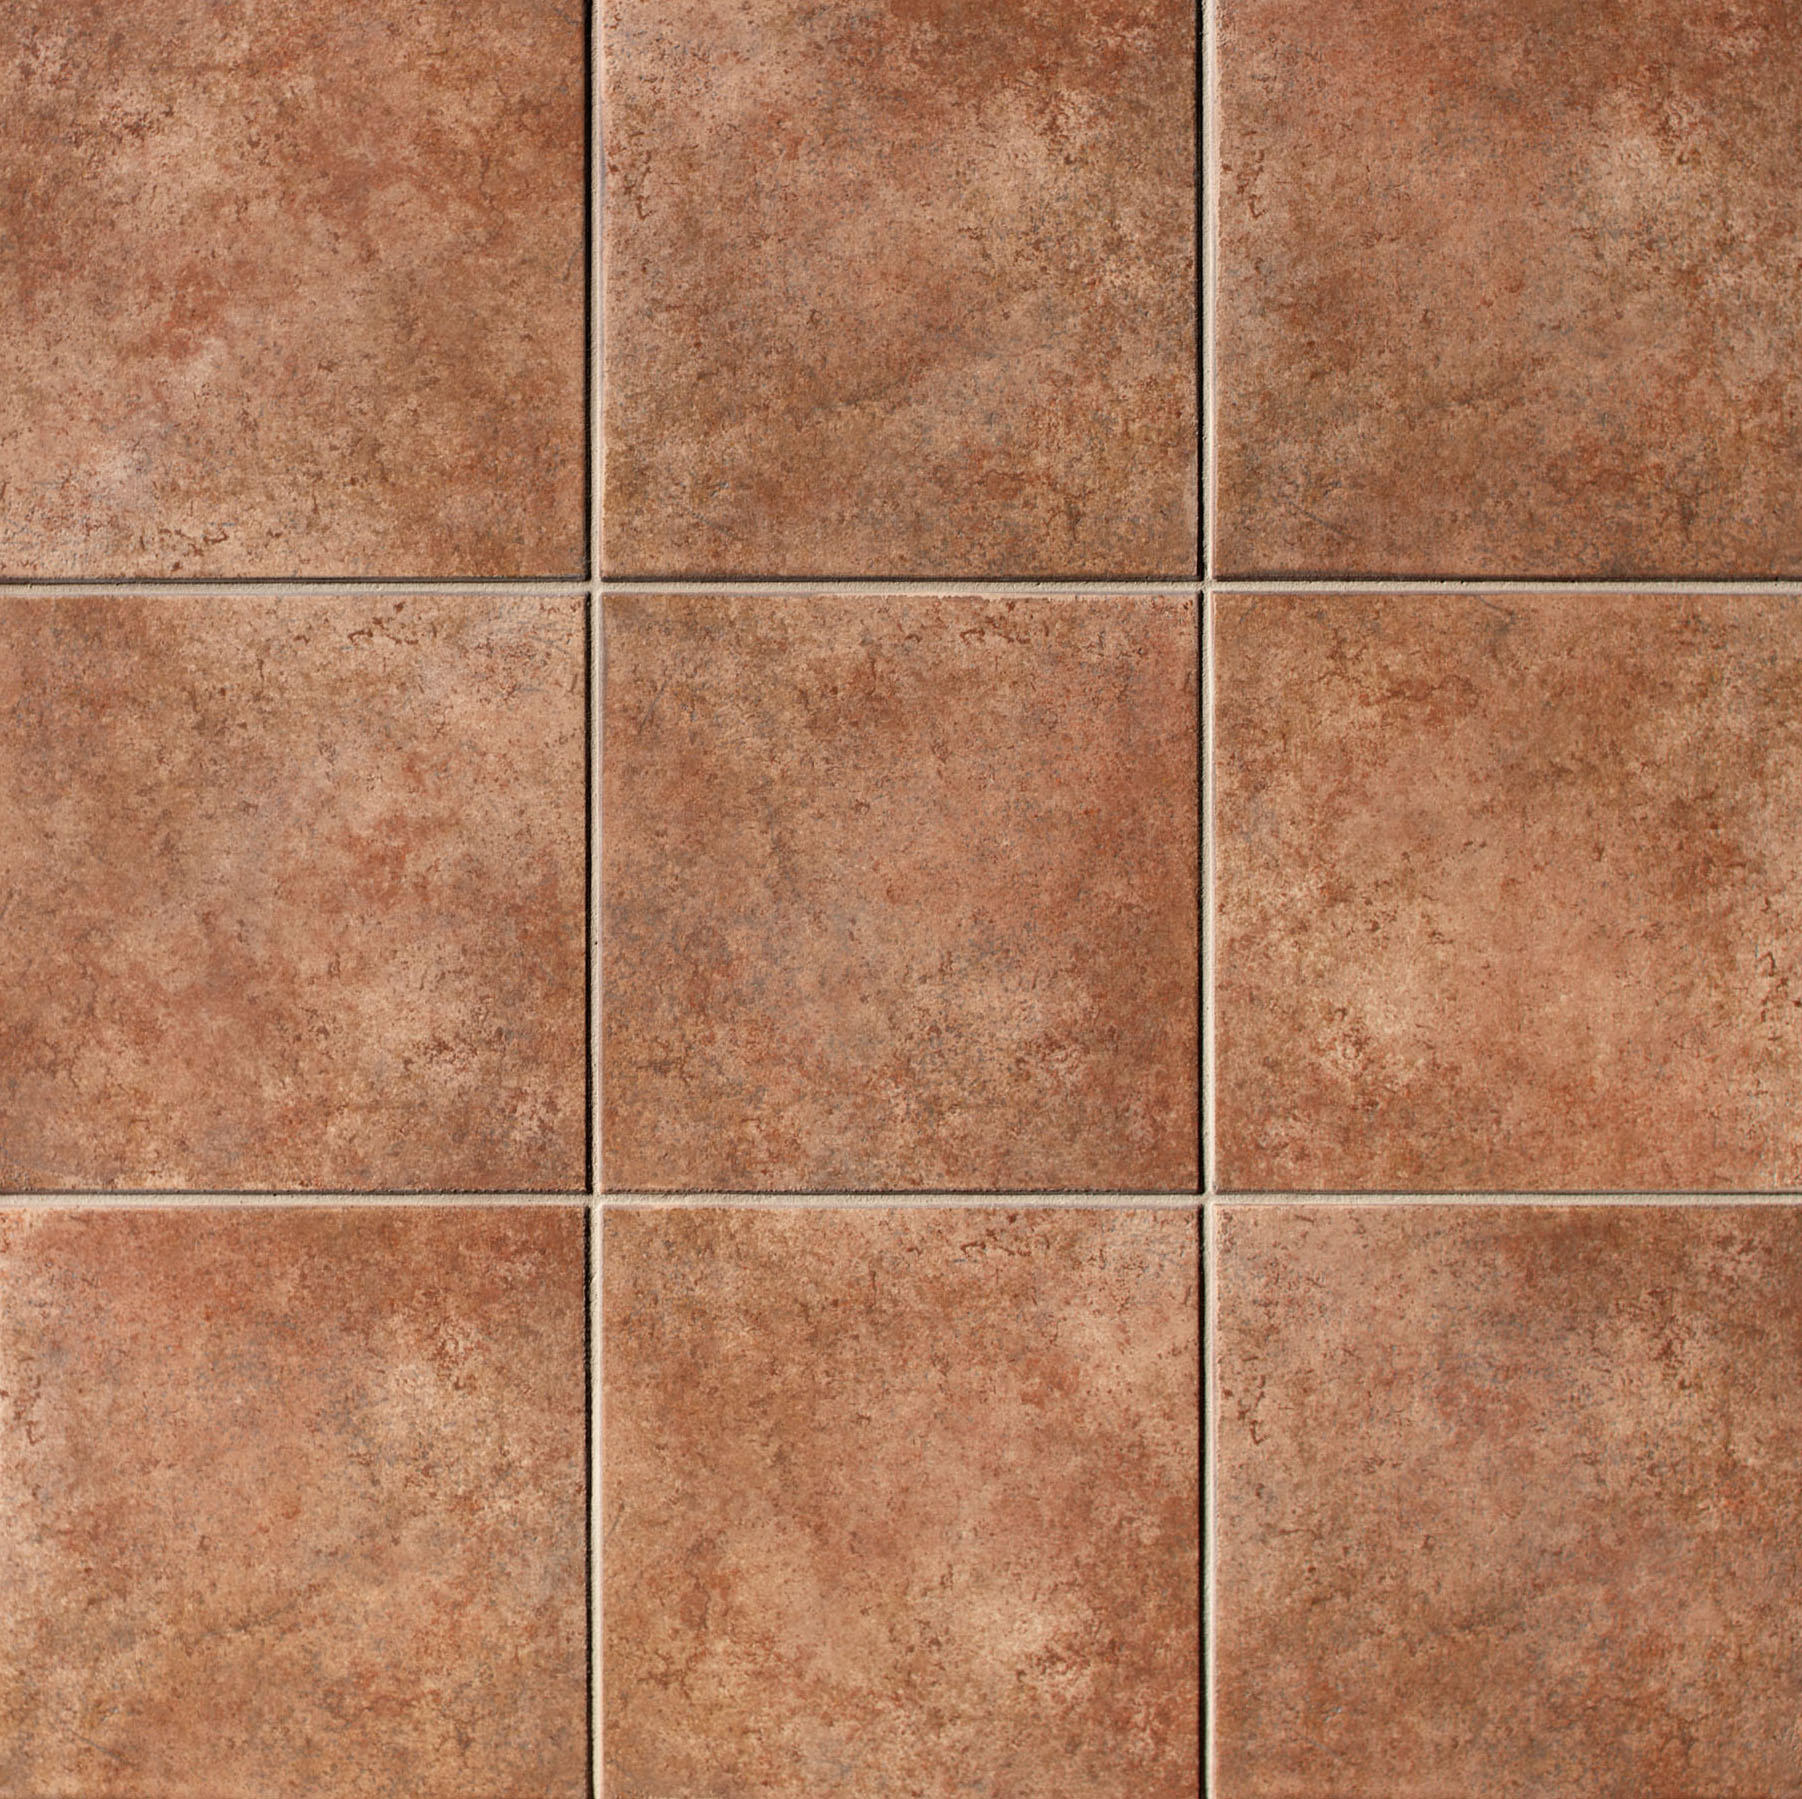 Ecocycle americana alamo floor tiles from crossville architonic ecocycle americana alamo by crossville floor tiles dailygadgetfo Image collections